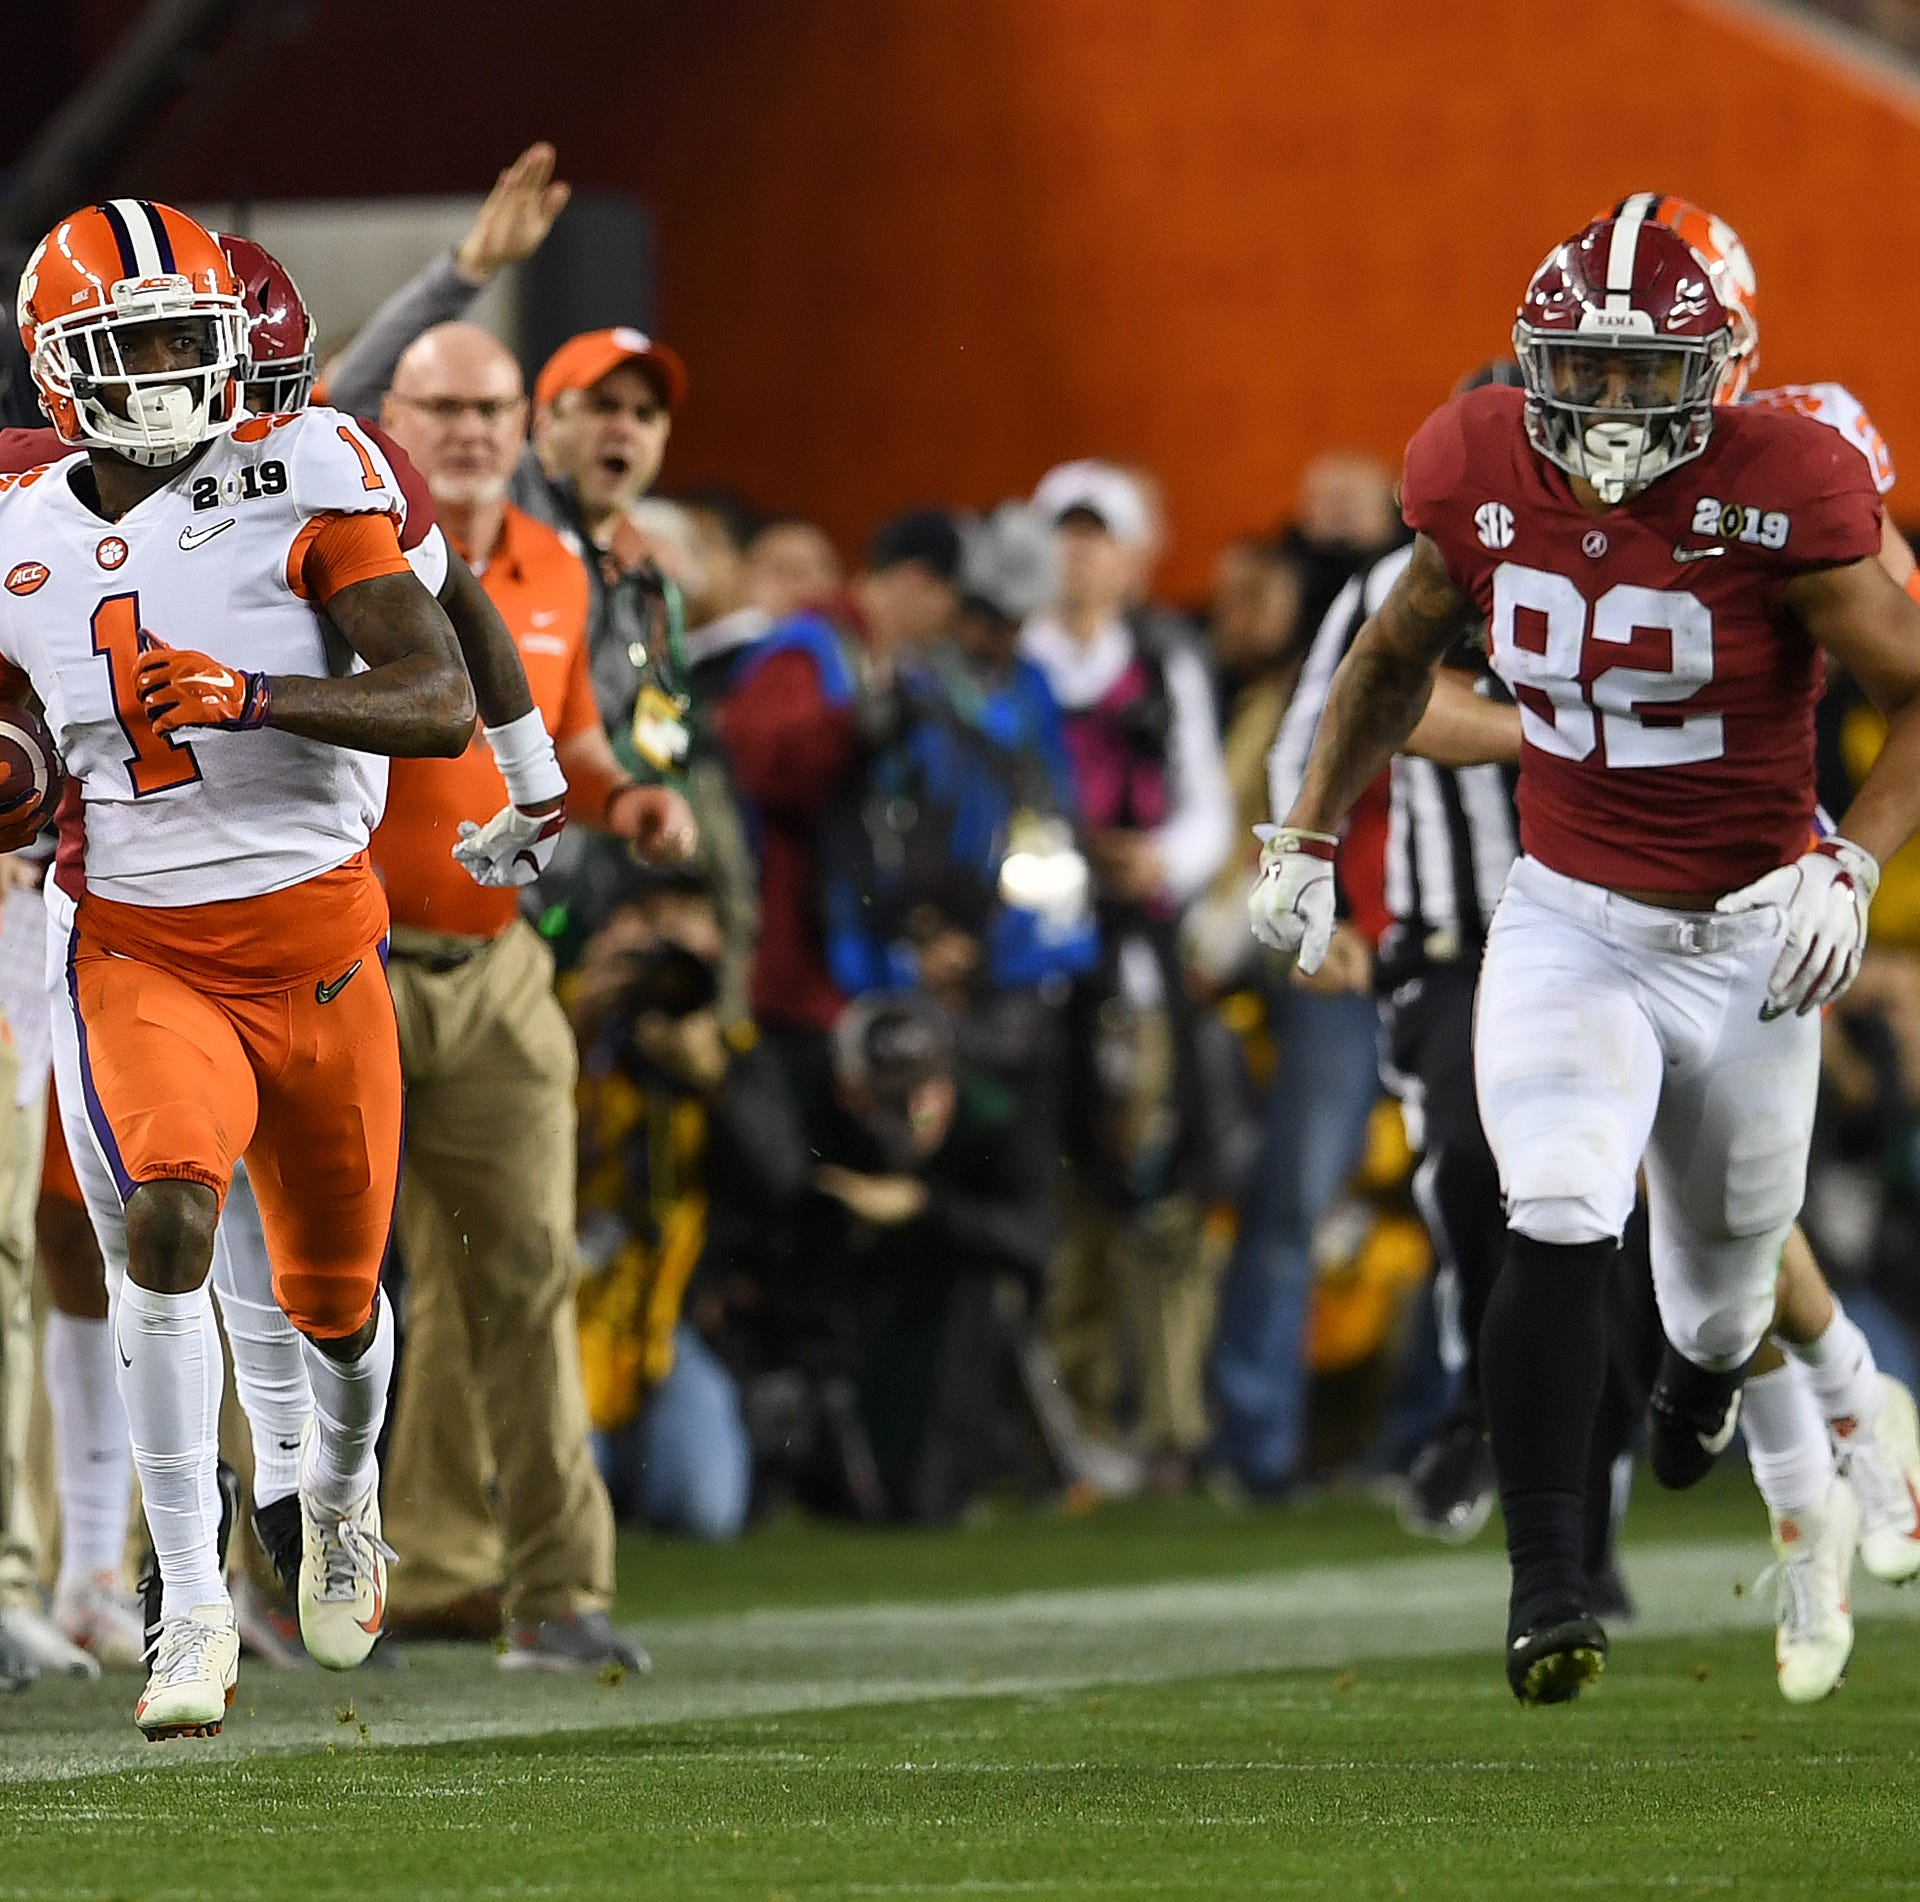 Title-game heroics helped elevate Clemson football's Trayvon Mullen to lofty draft status